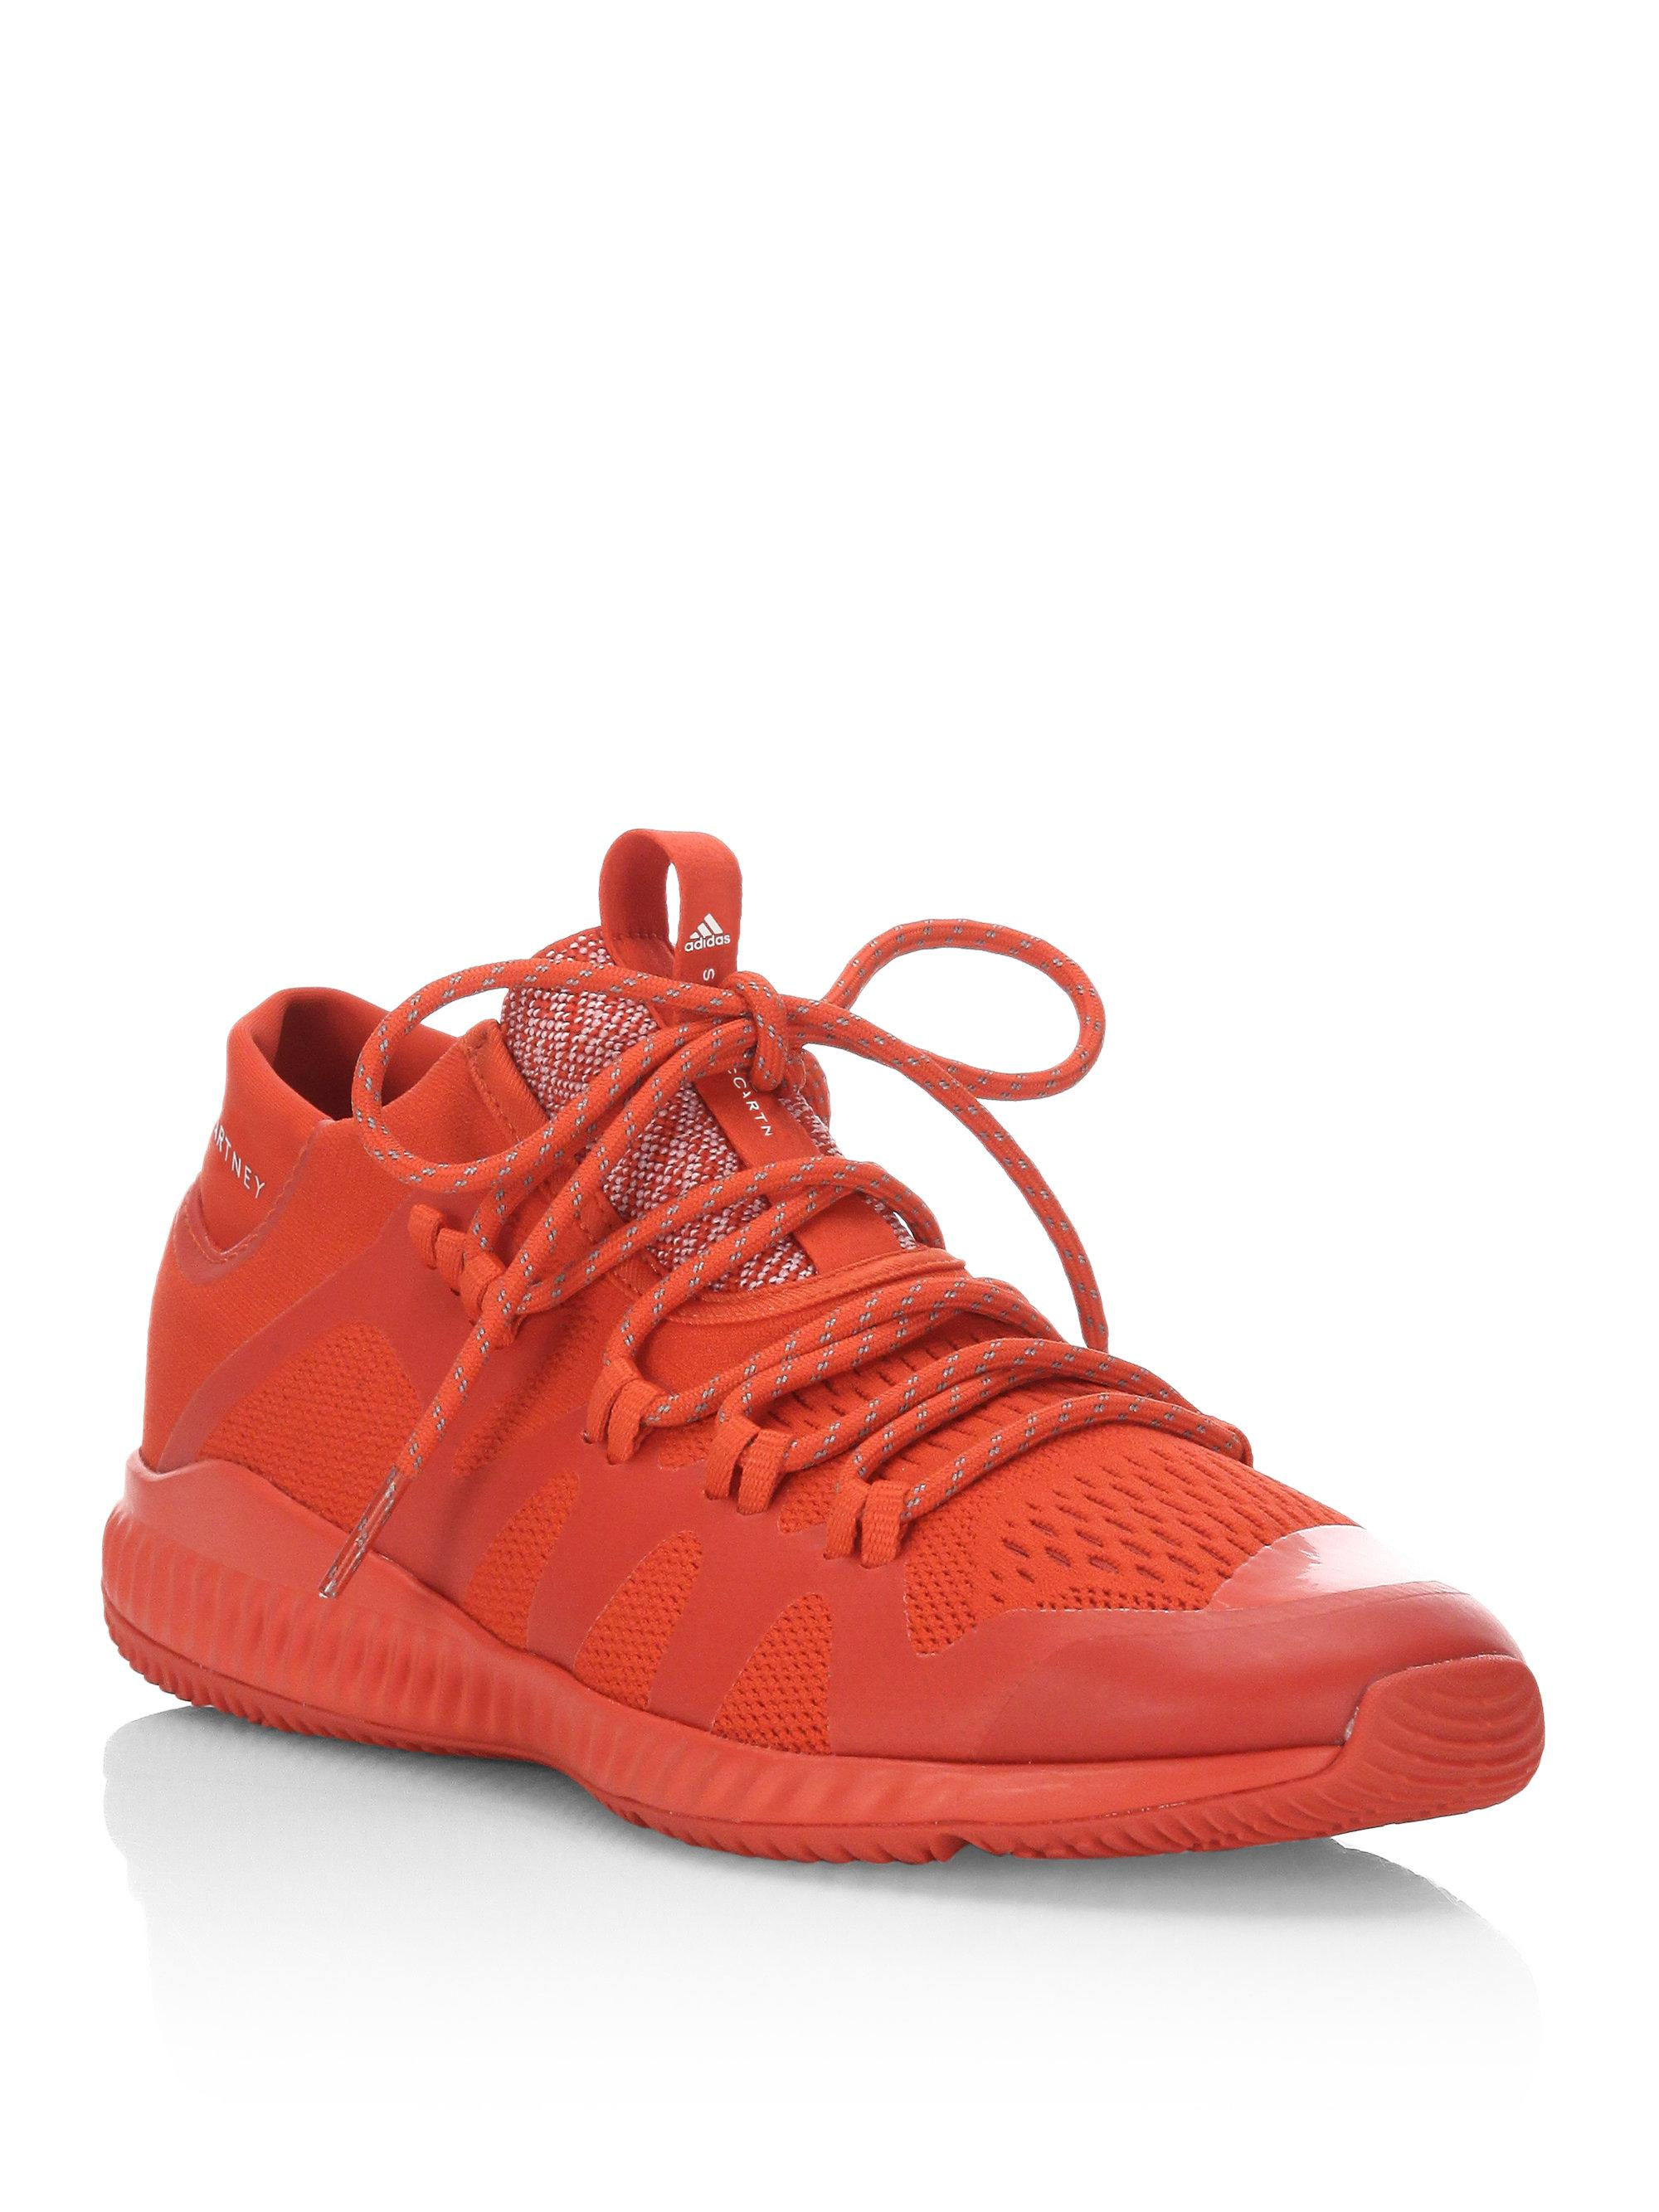 adidas By Stella McCartney. Women's Red Crazy Train Bounce Sneakers